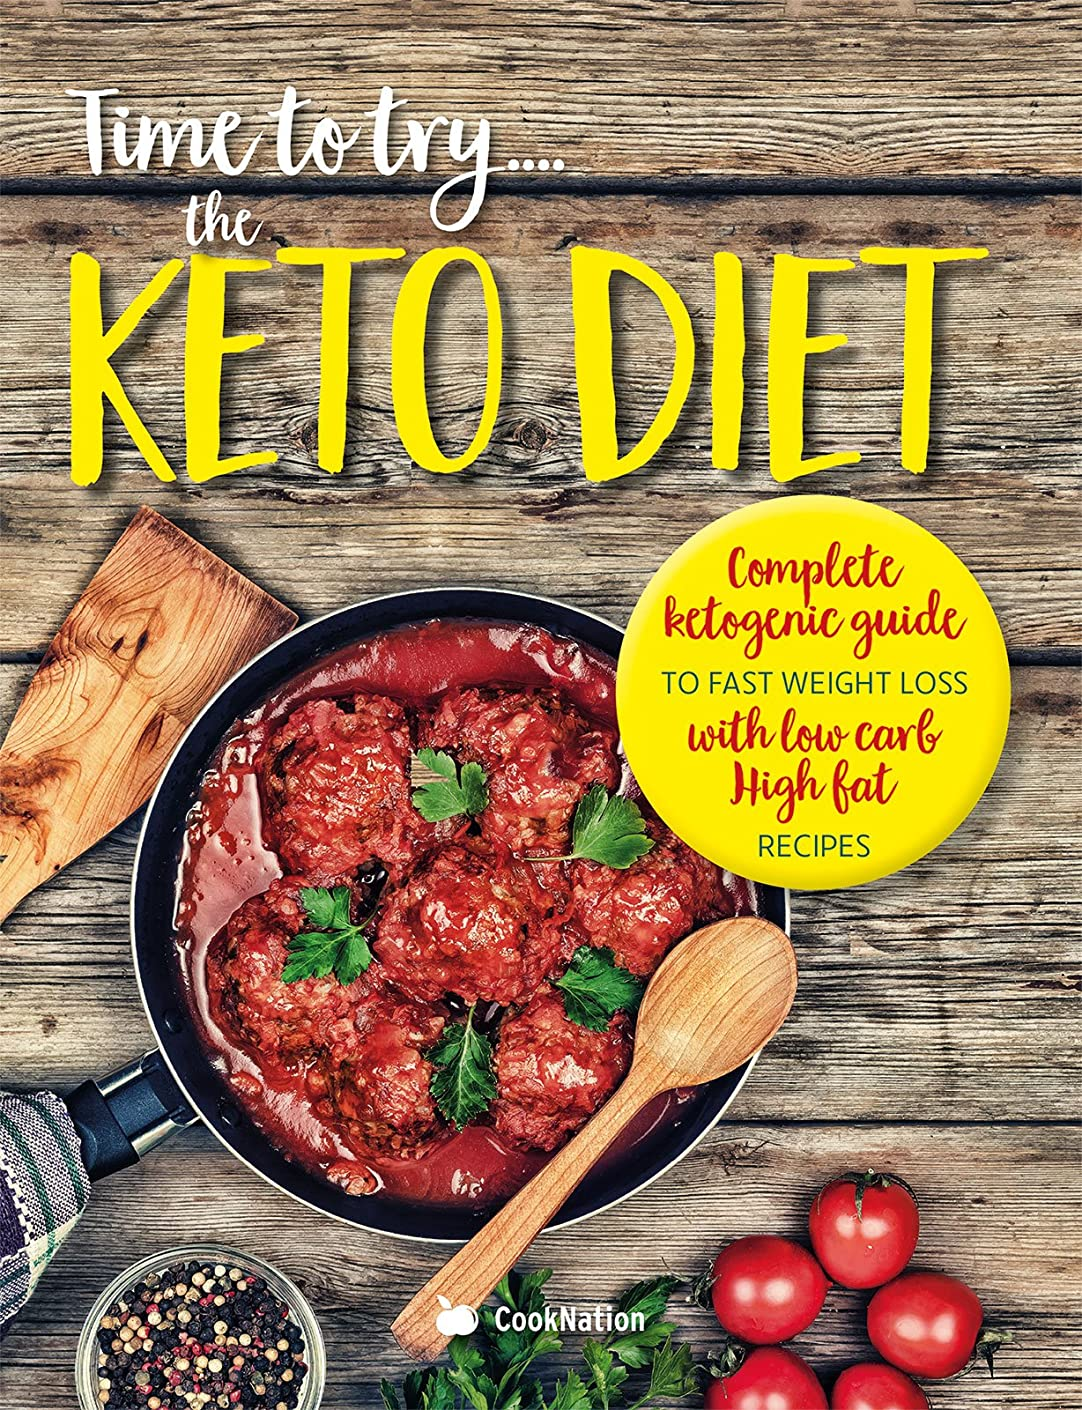 Time to try... the KETO DIET: Complete ketogenic guide to fast weight loss with low carb, high fat recipes (English Edition)